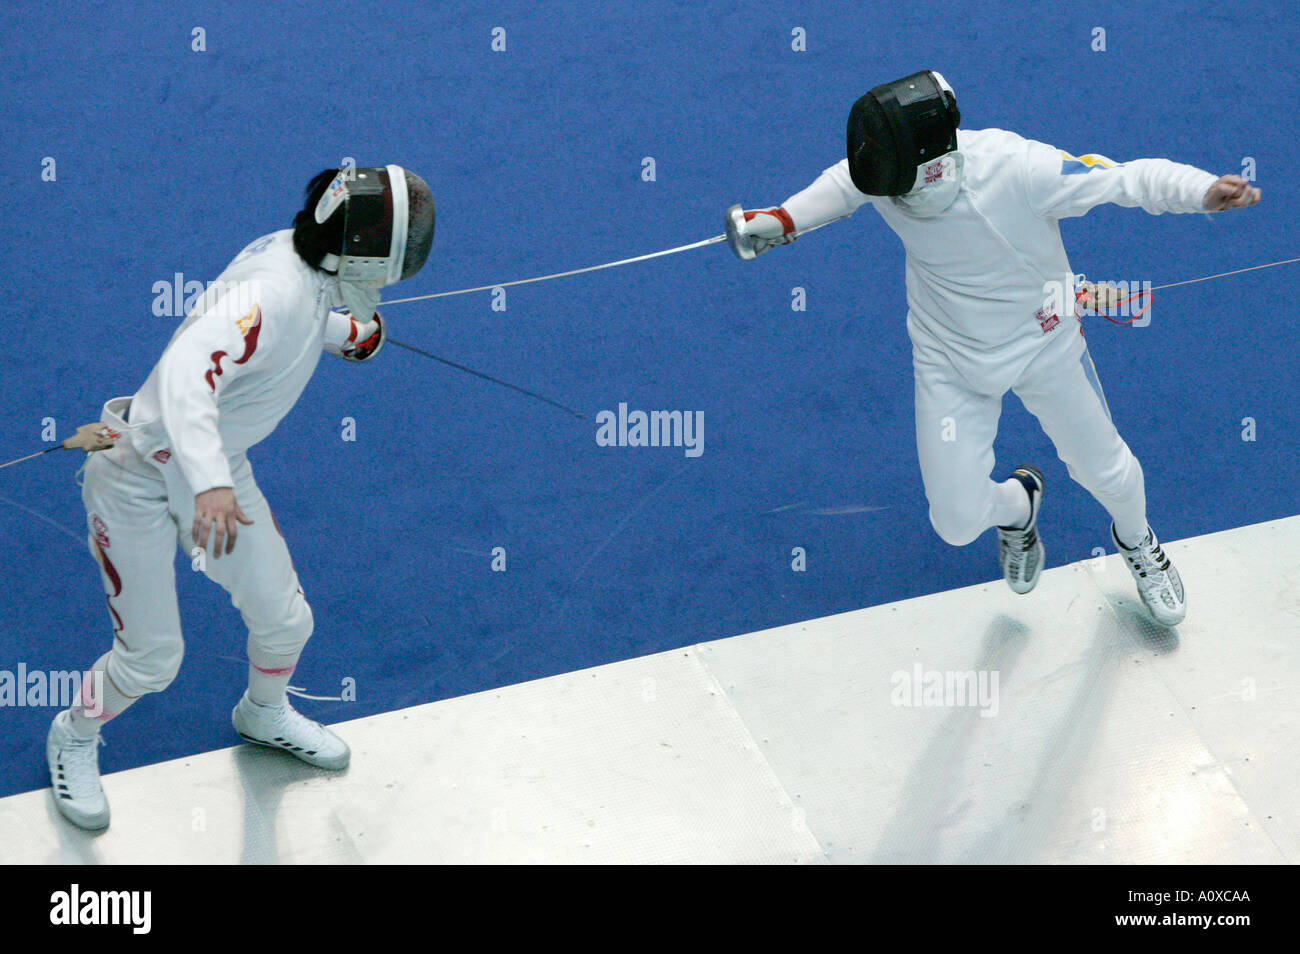 China L vs Ukraine epee bout during the Challenge  Monal in Paris 14 March 2004 - Stock Image